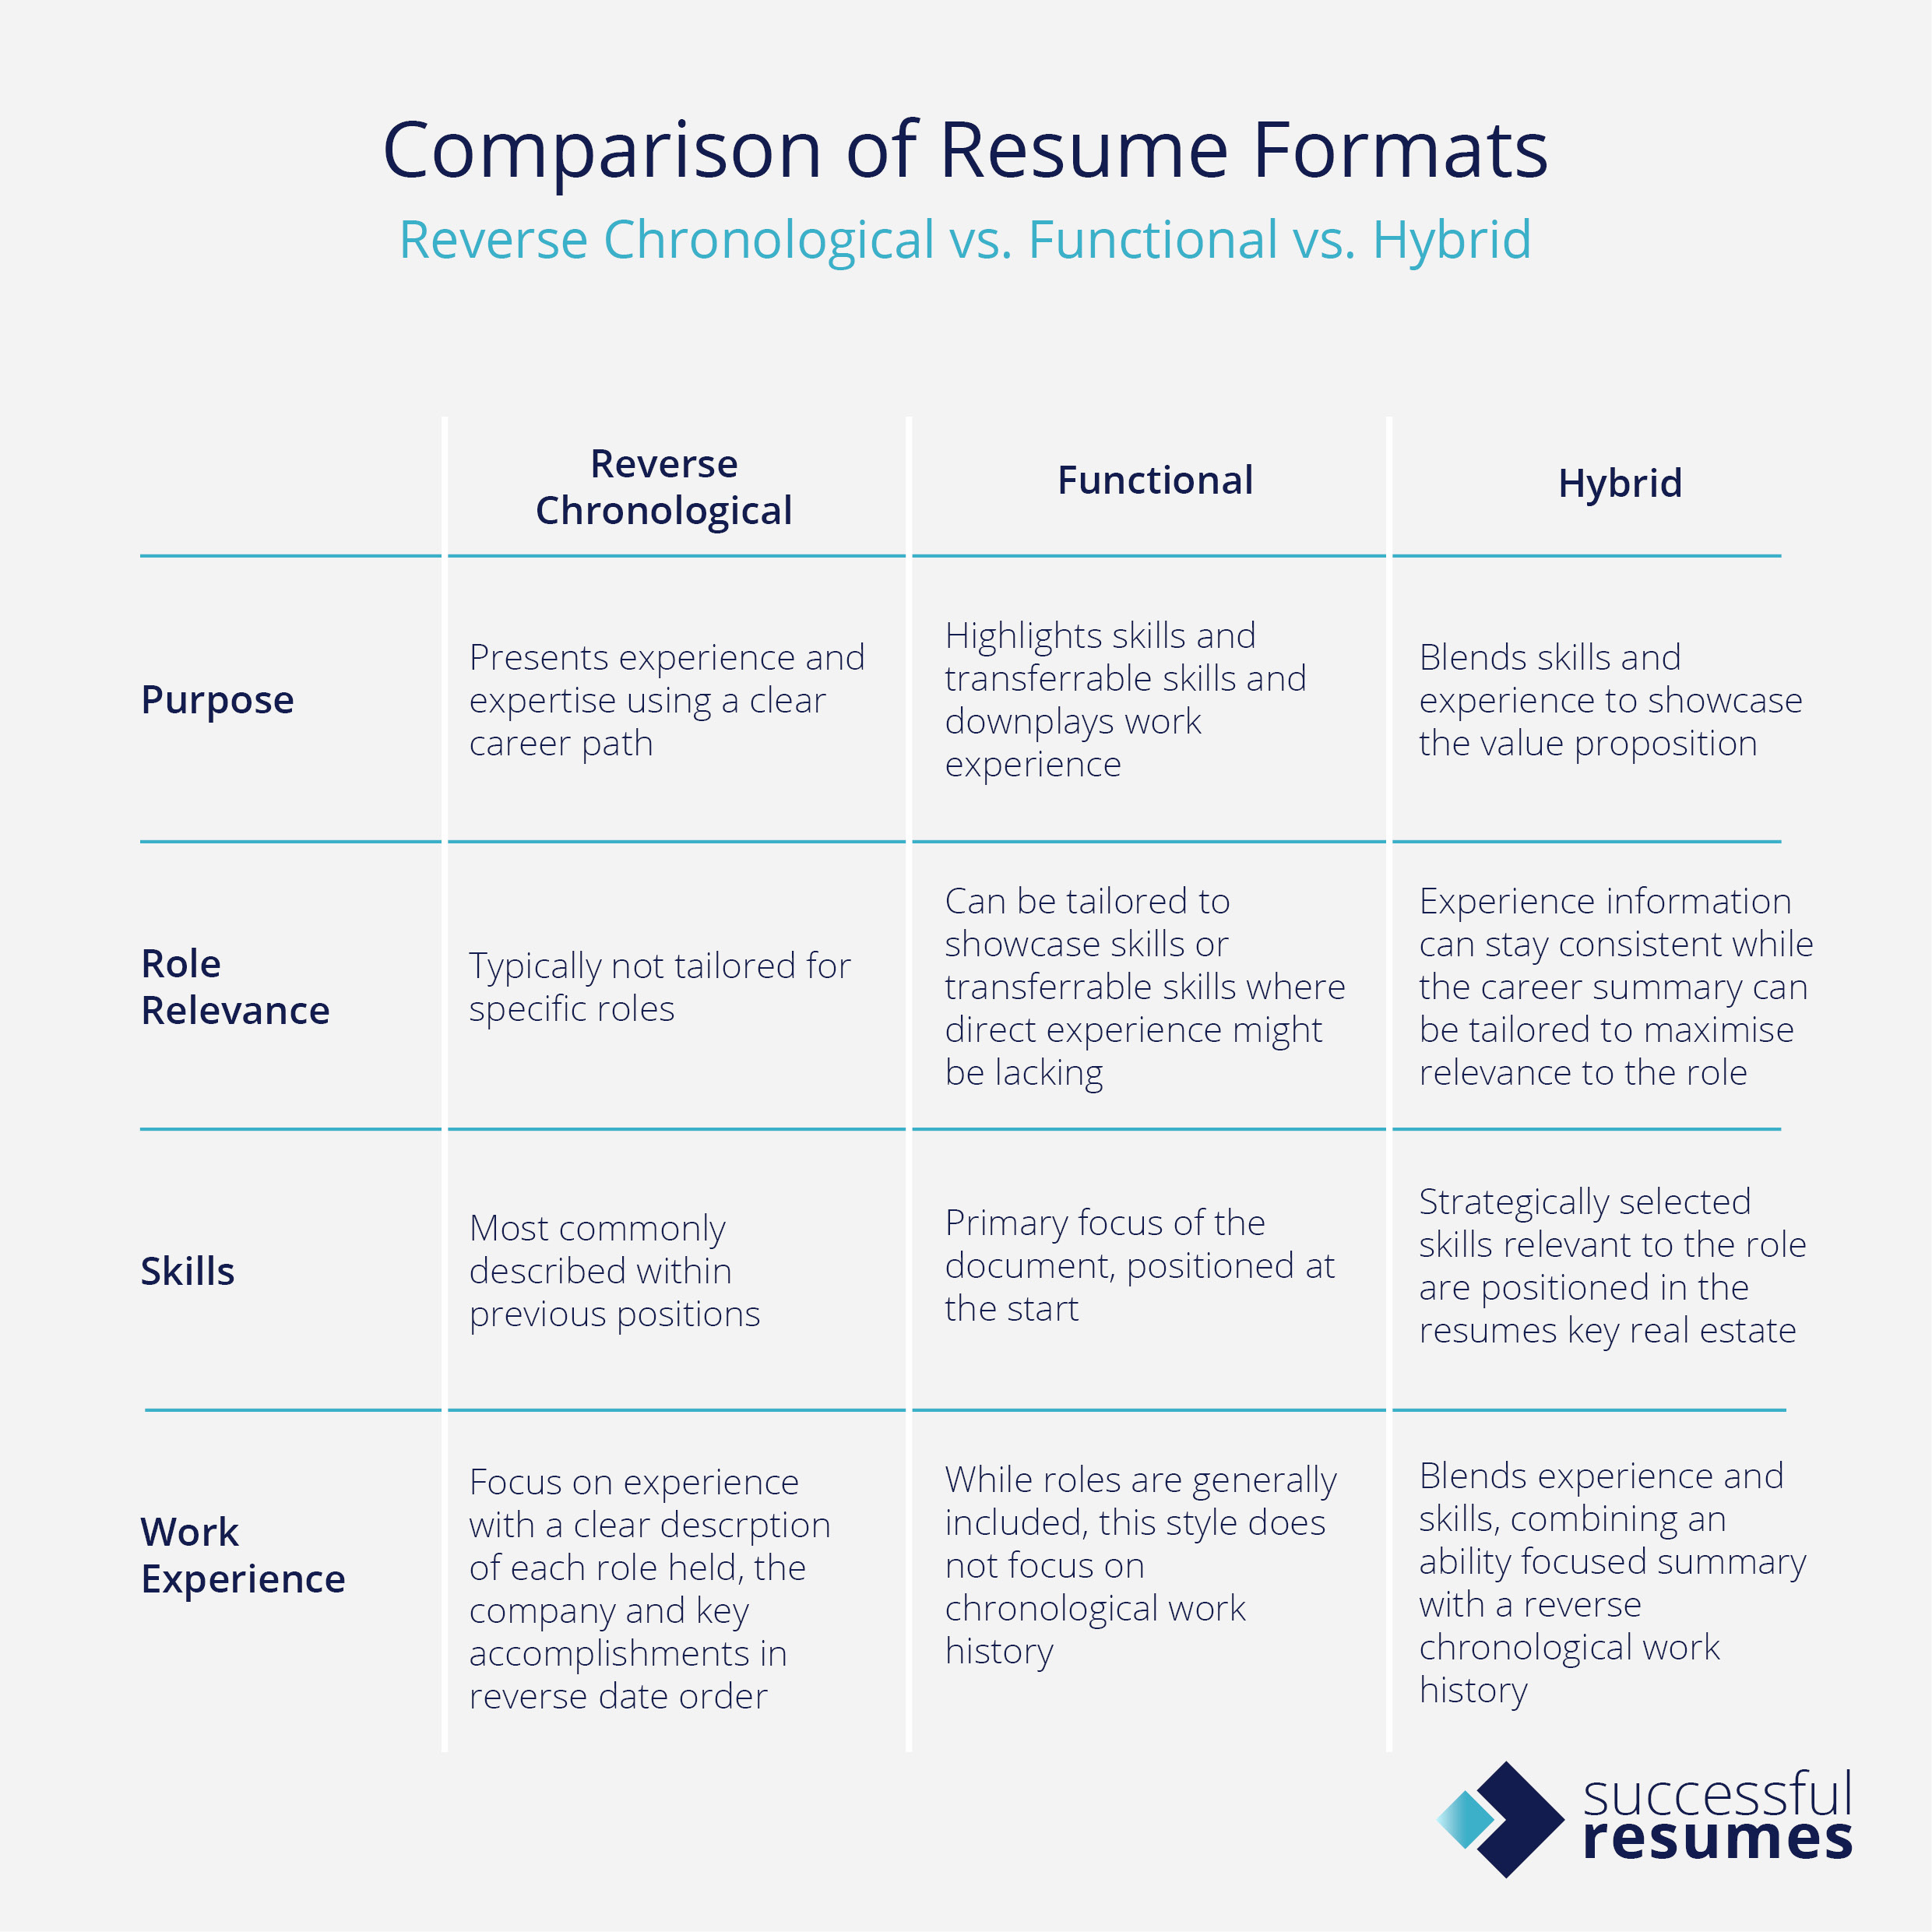 Why Hybrid Resumes Are The Best Way To Showcase Your Potential